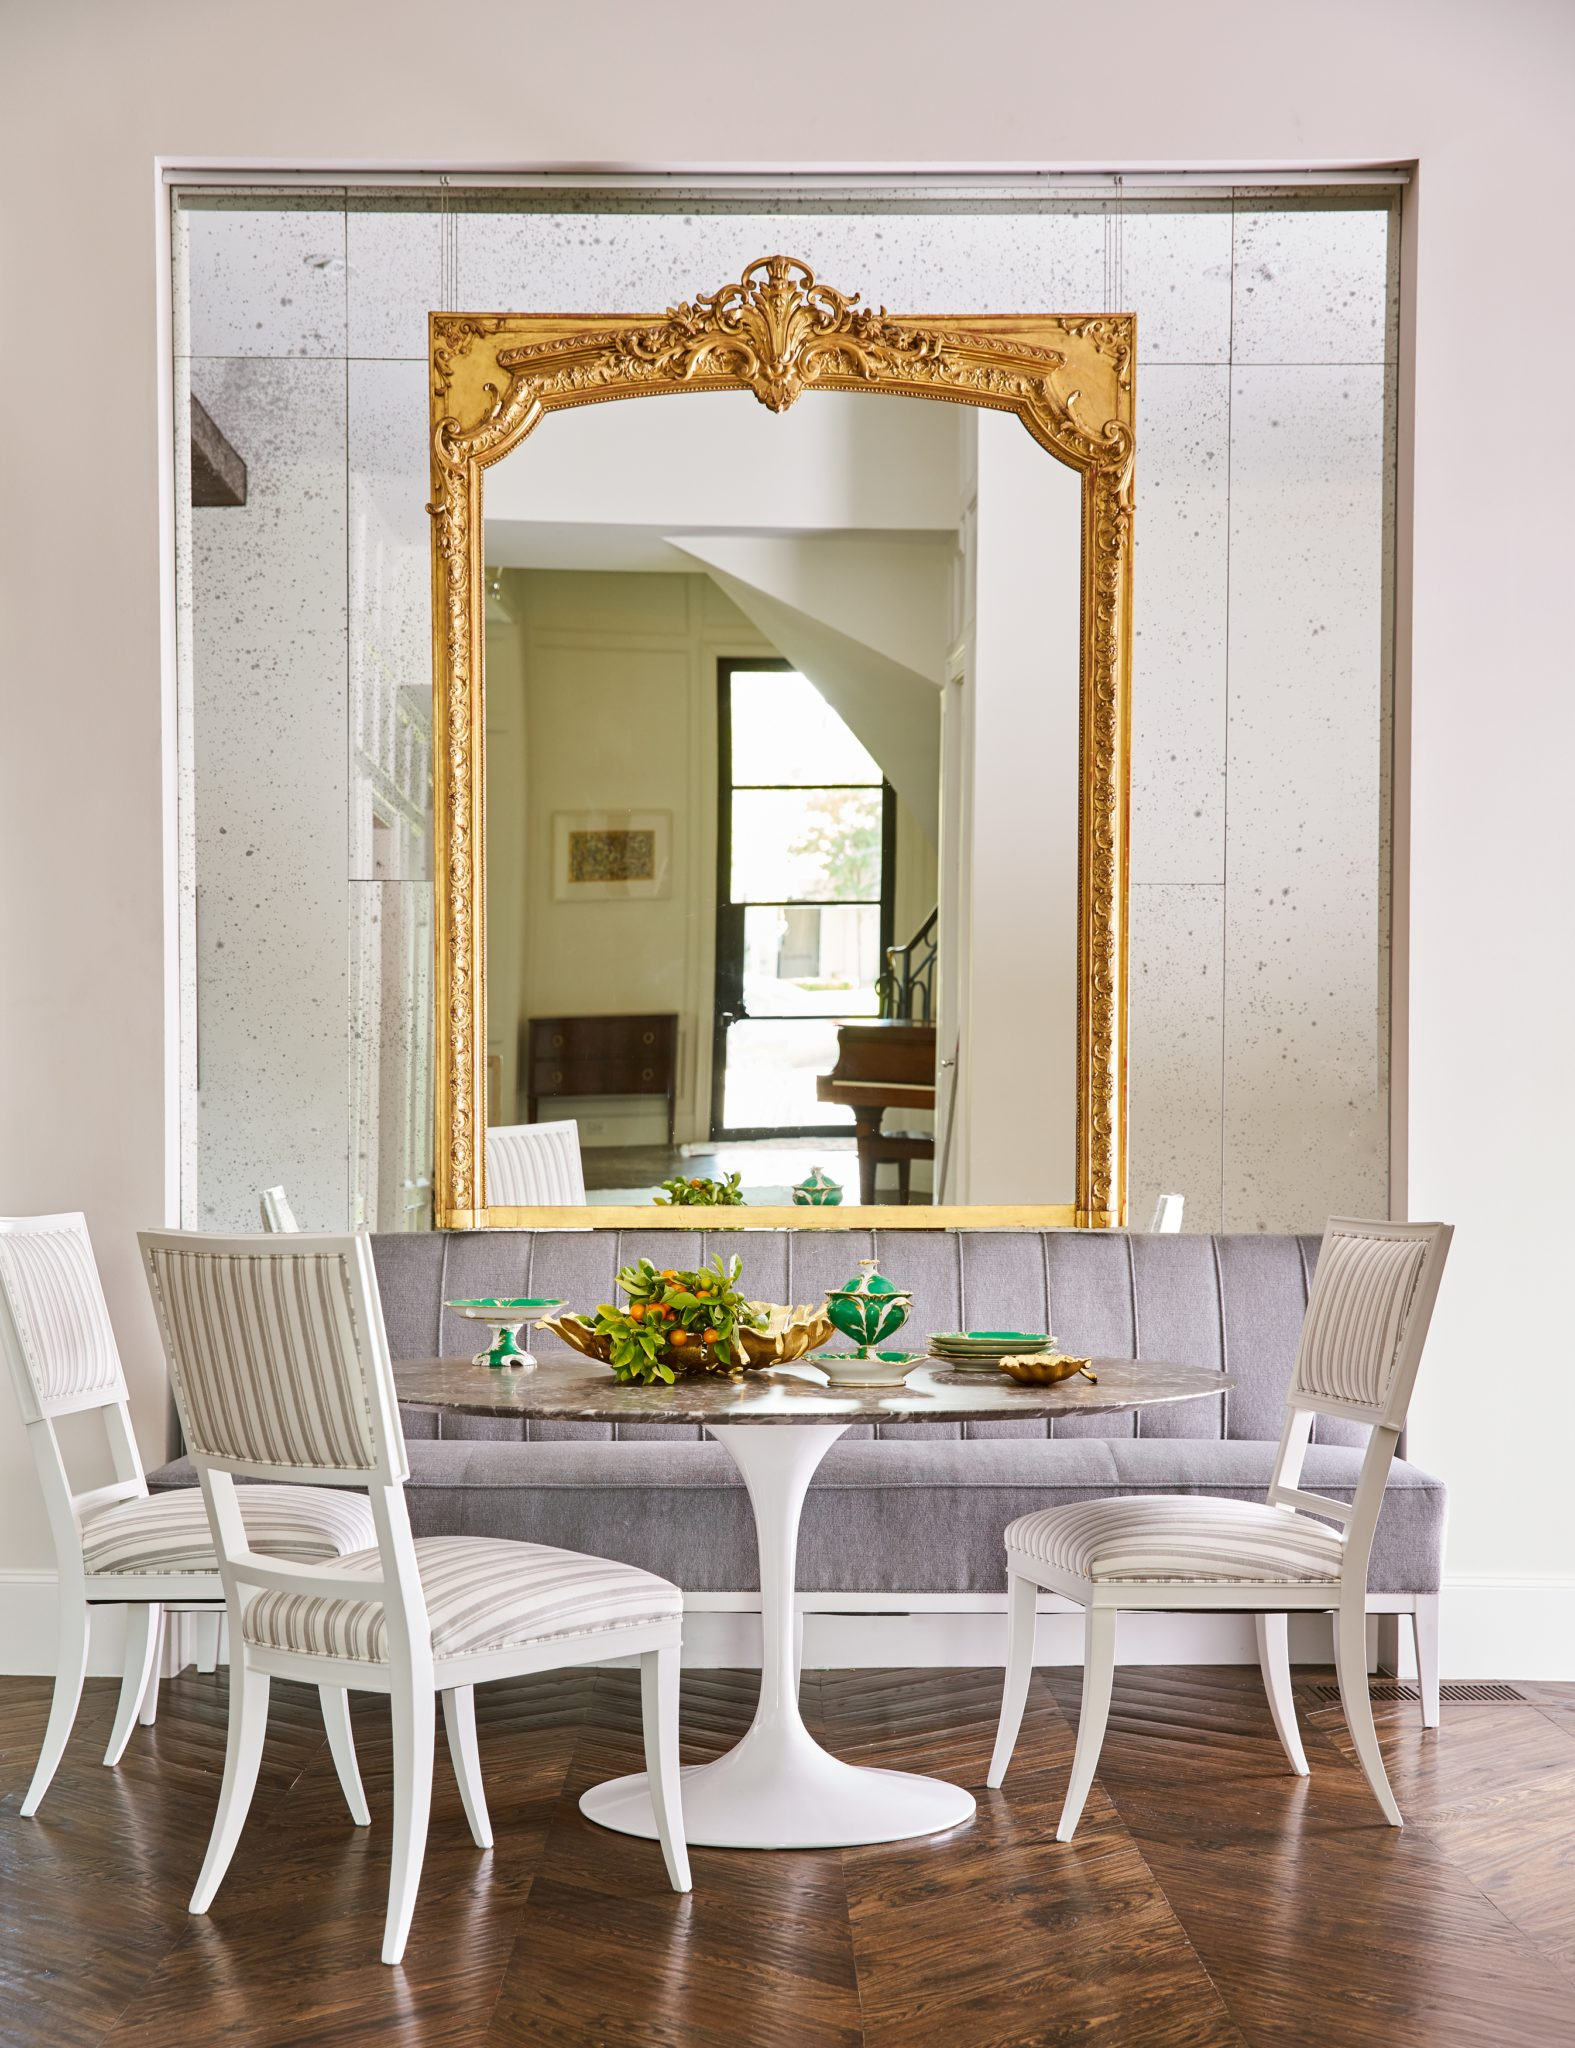 Breakfast Nook with Anique Mirror Feature by Denise McGaha Interiors